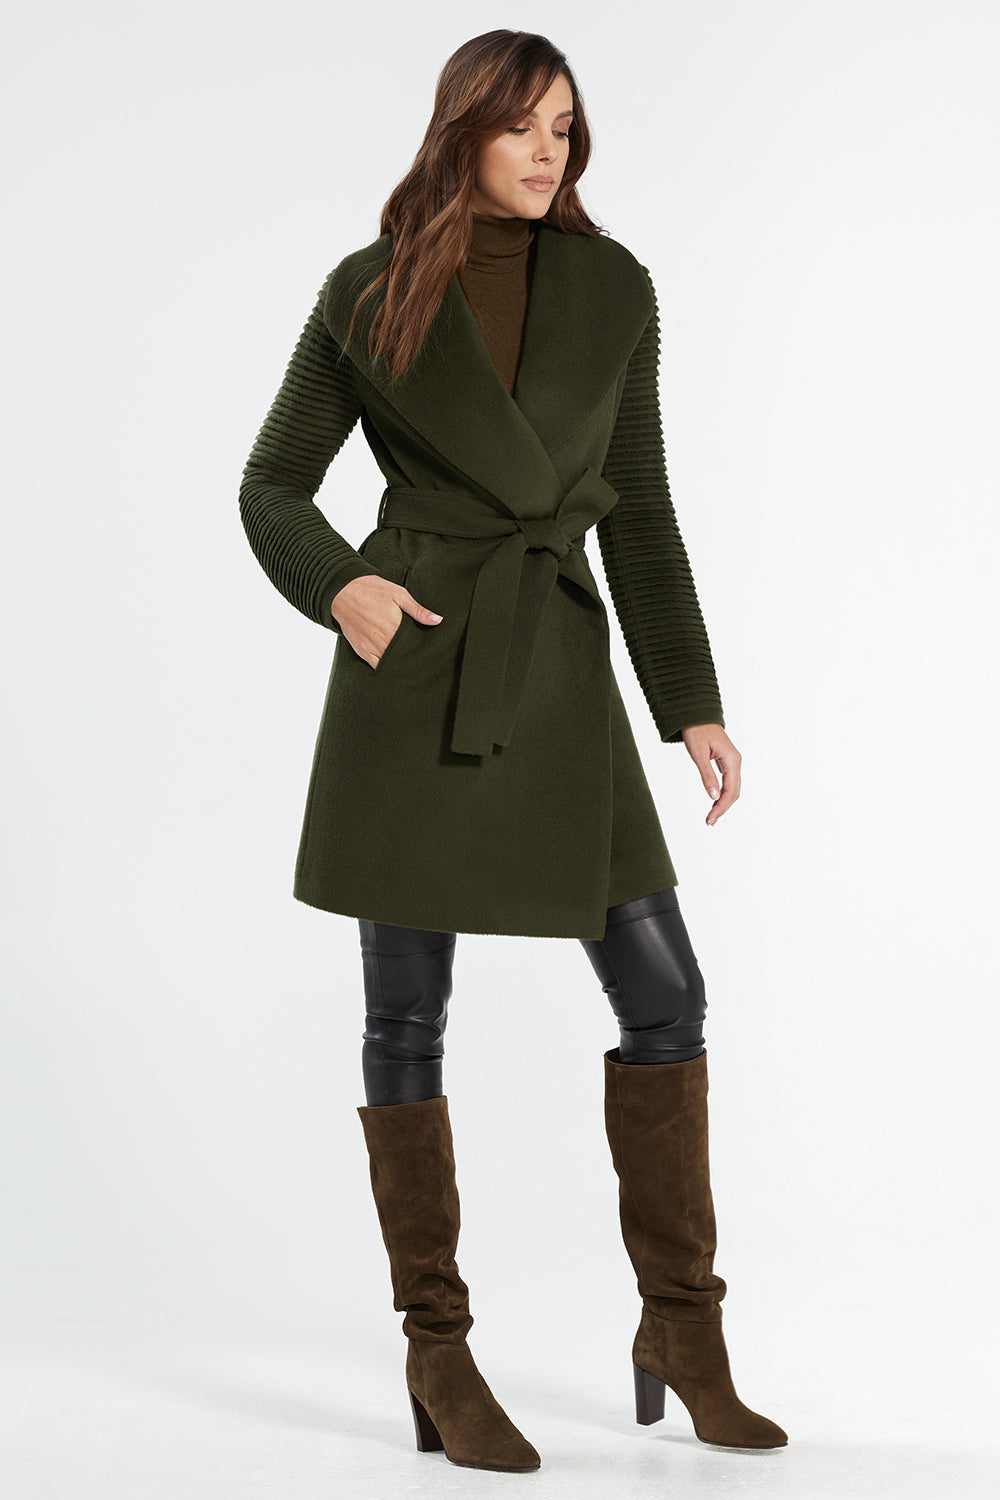 Sentaler Mid Length Shawl Collar Wrap Coat with Ribbed Sleeves featured in Baby Alpaca and available in Olive. Seen from side.